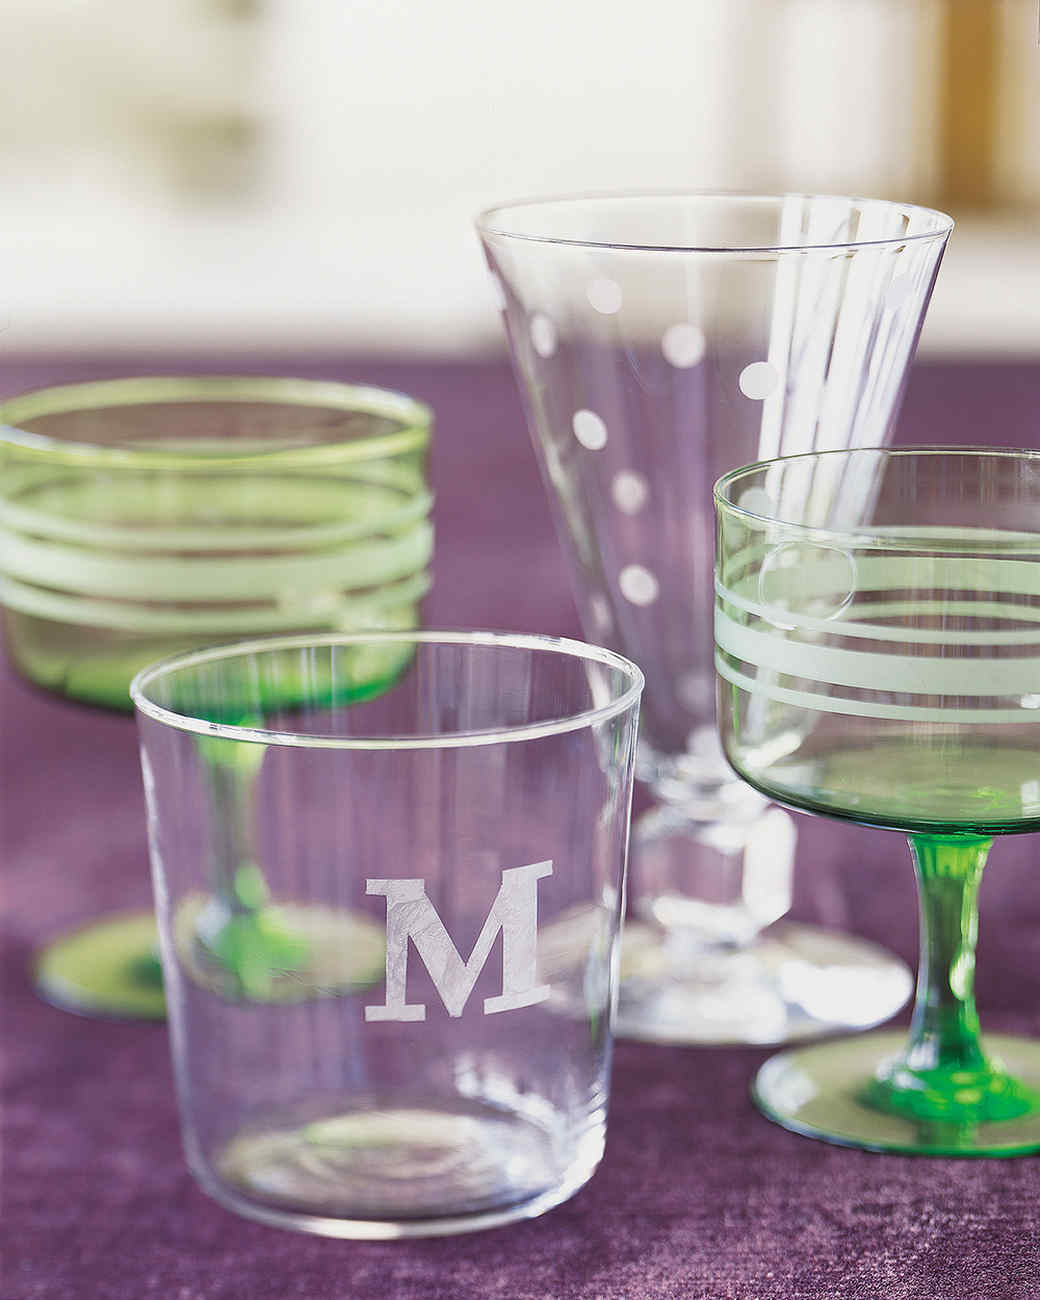 How to make wedding glasses yourself - several different ways